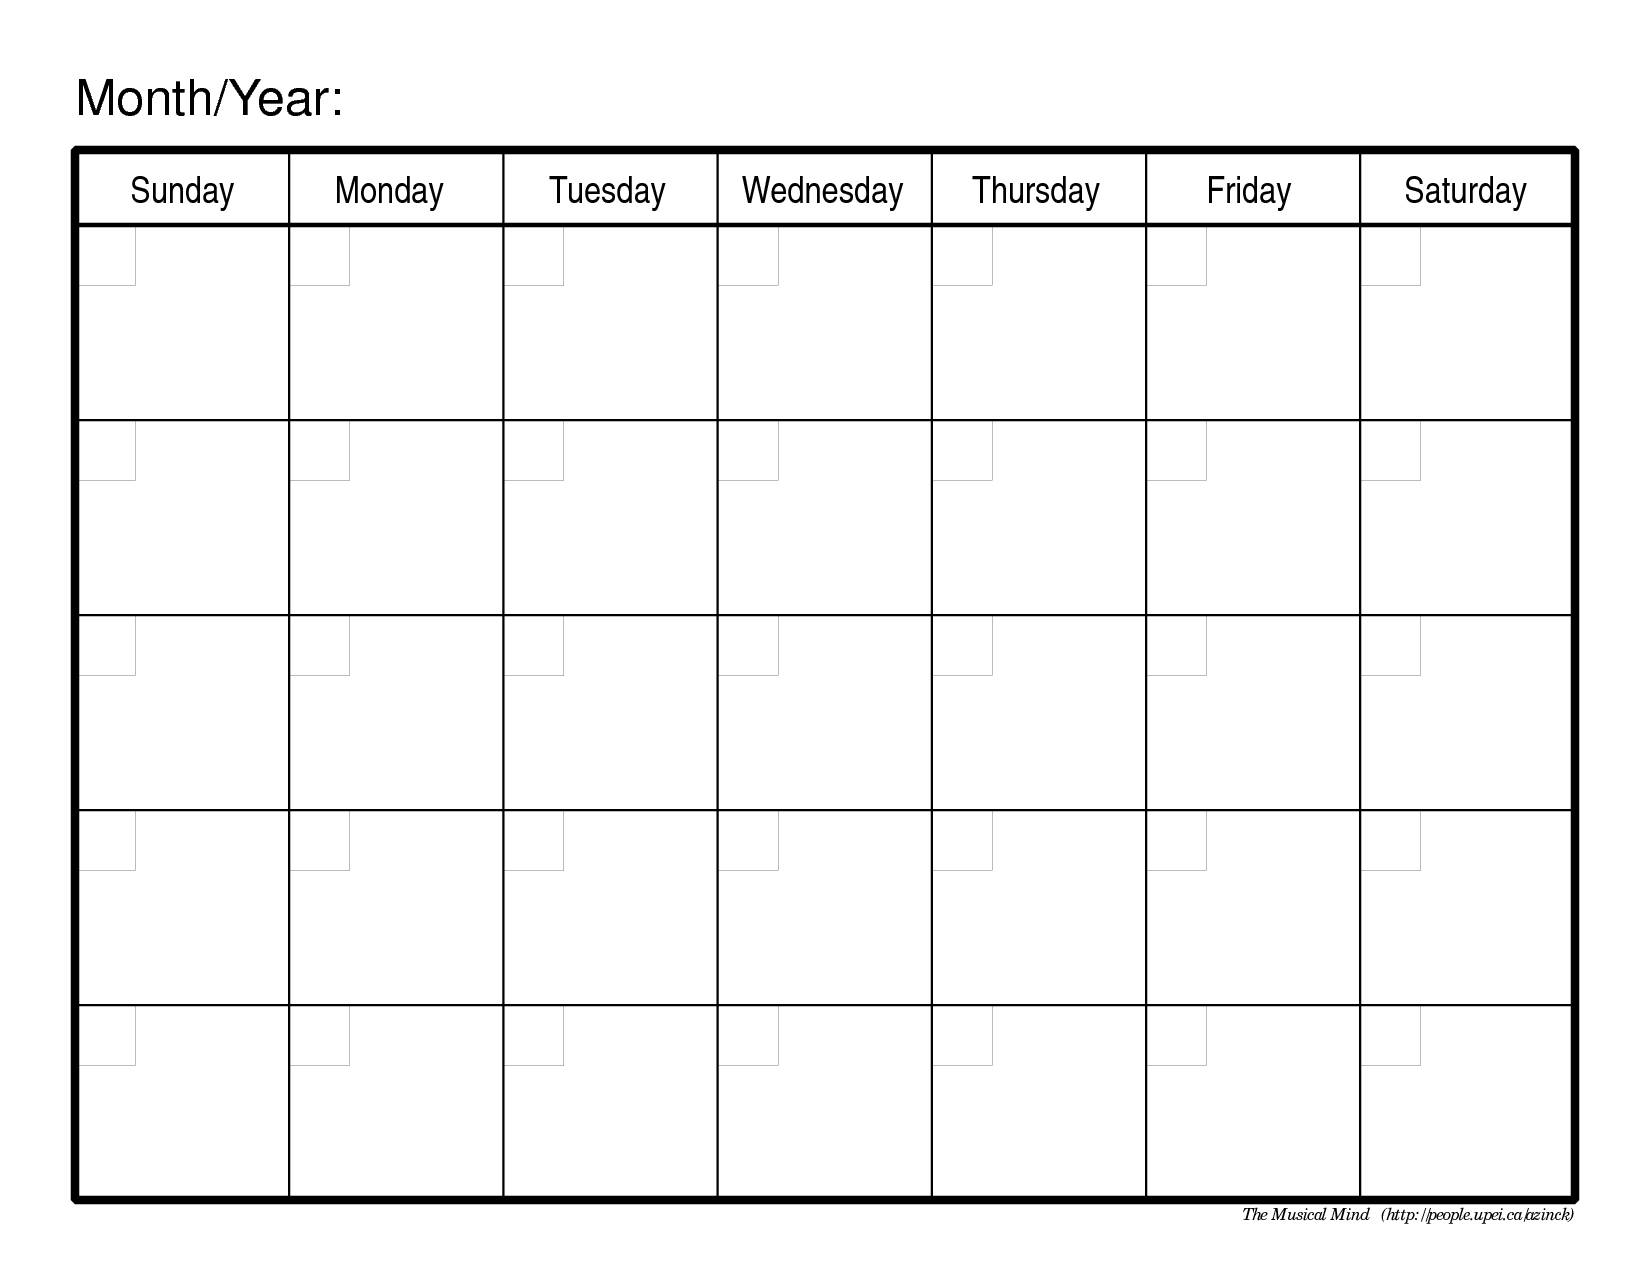 Calendar Monthly Print Out : Monthly calendar print out calendars